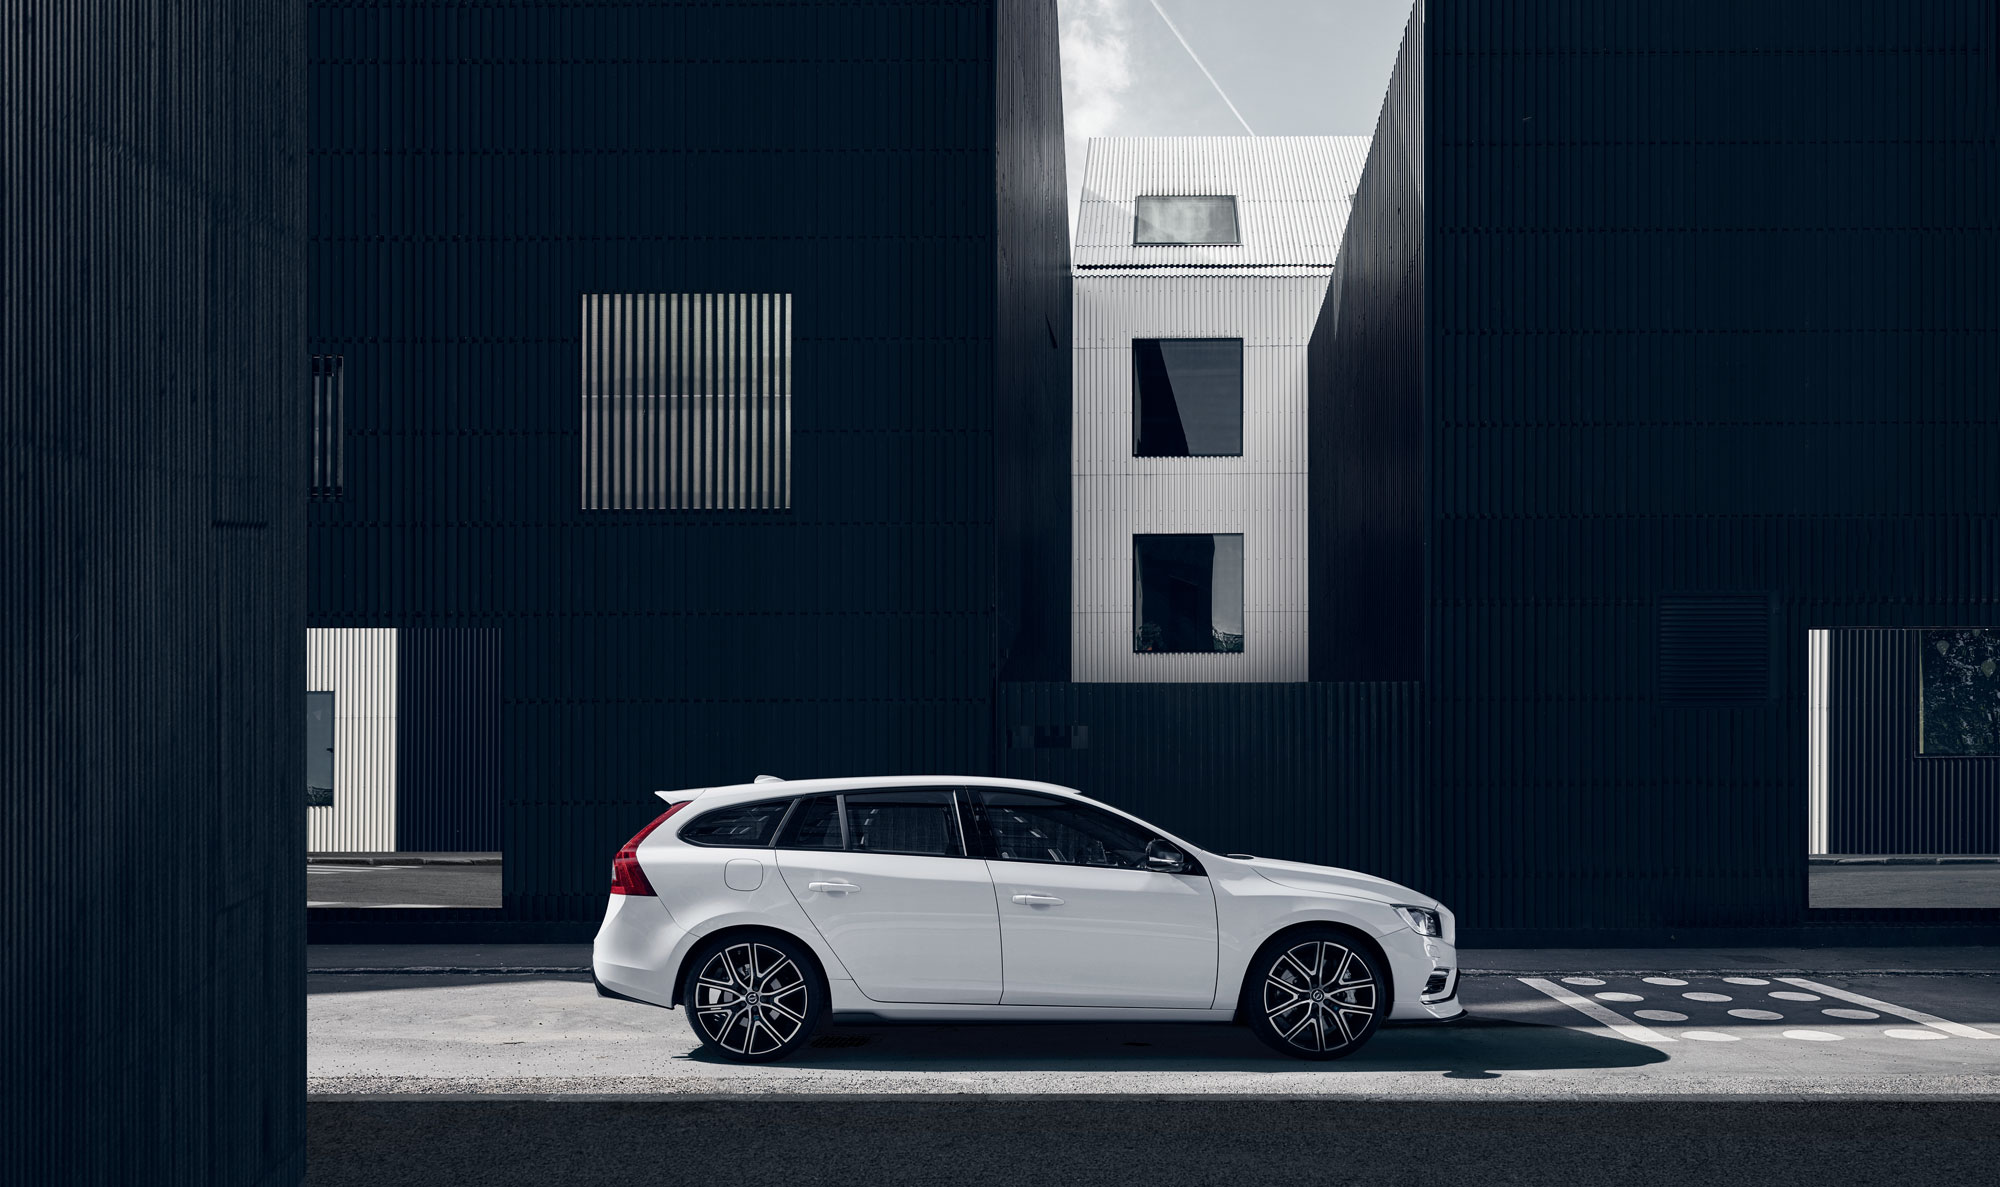 White Volvo in front of a black and white building